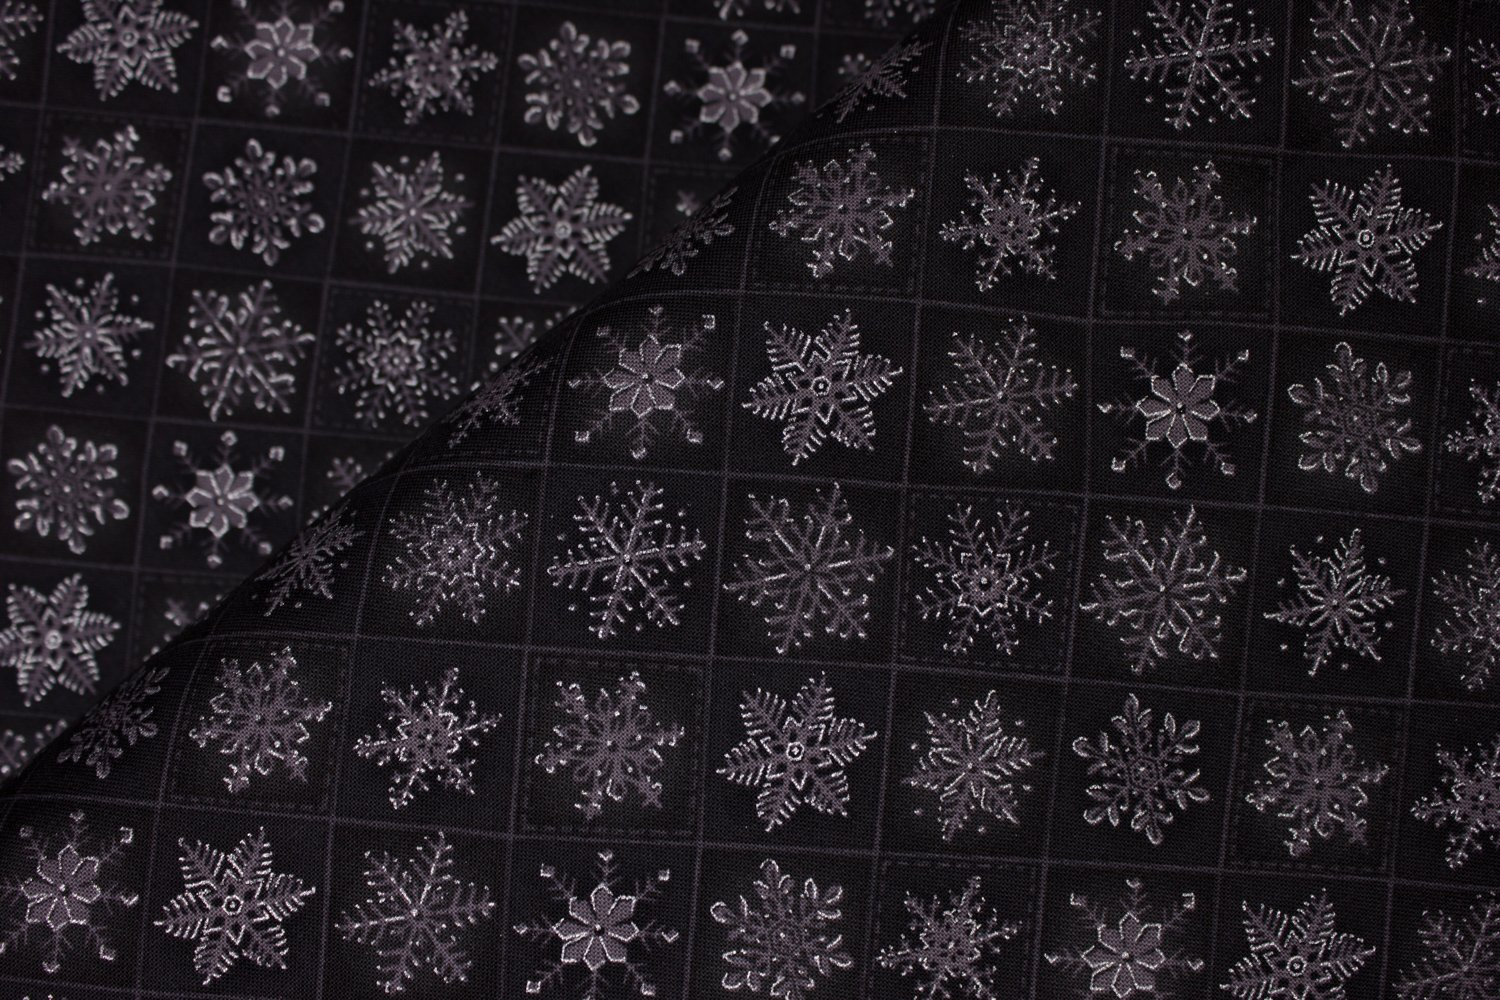 Gray with Silver Metallic Accent Snowflakes on Black: The Gallery by Choice Fabrics